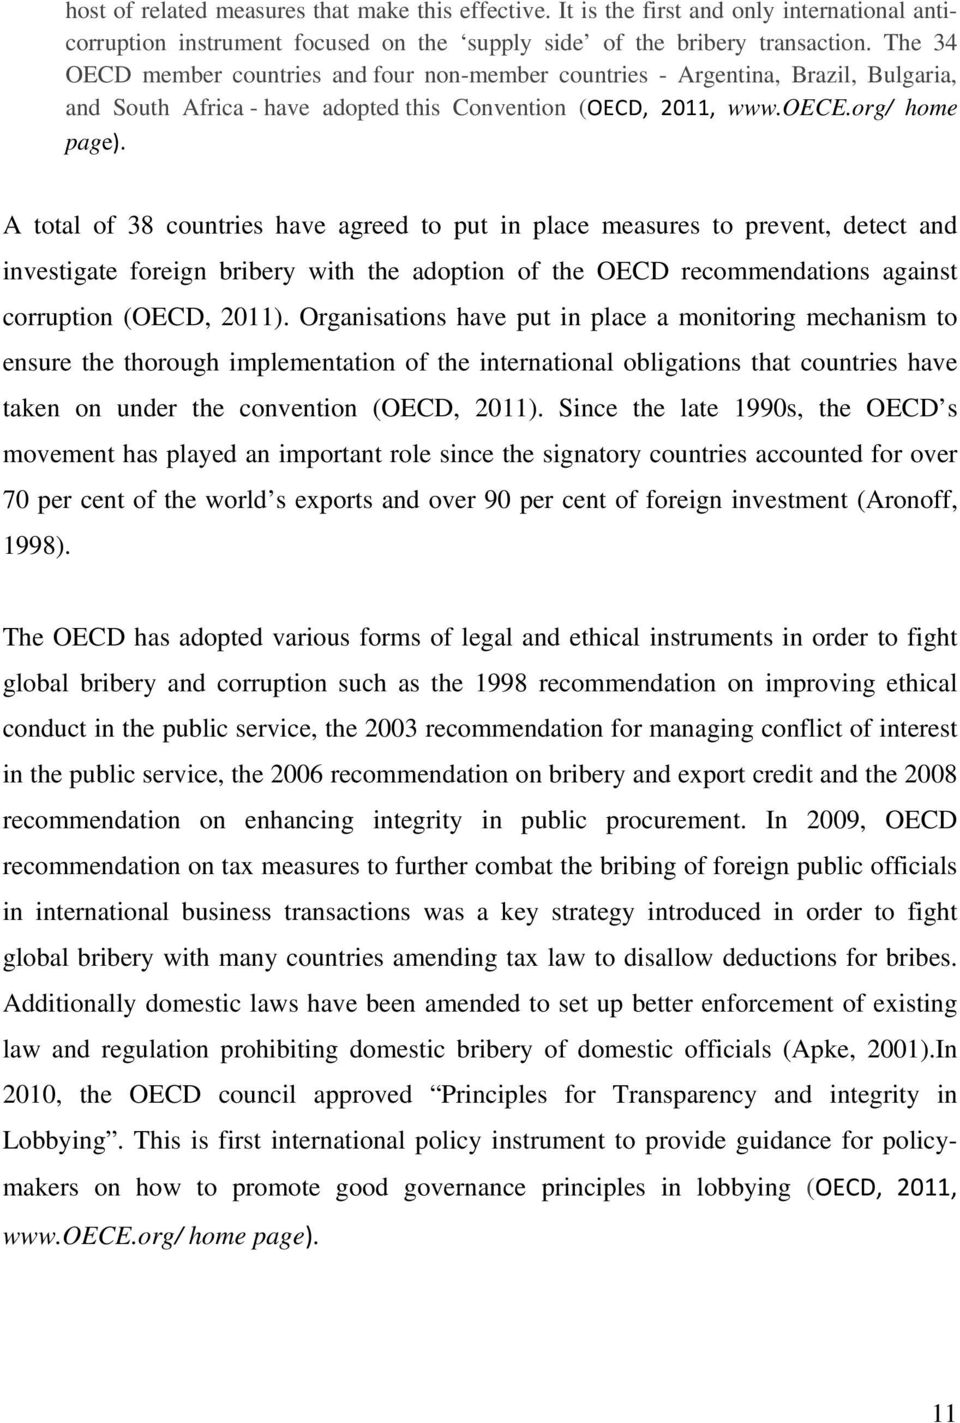 A total of 38 countries have agreed to put in place measures to prevent, detect and investigate foreign bribery with the adoption of the OECD recommendations against corruption (OECD, 2011).